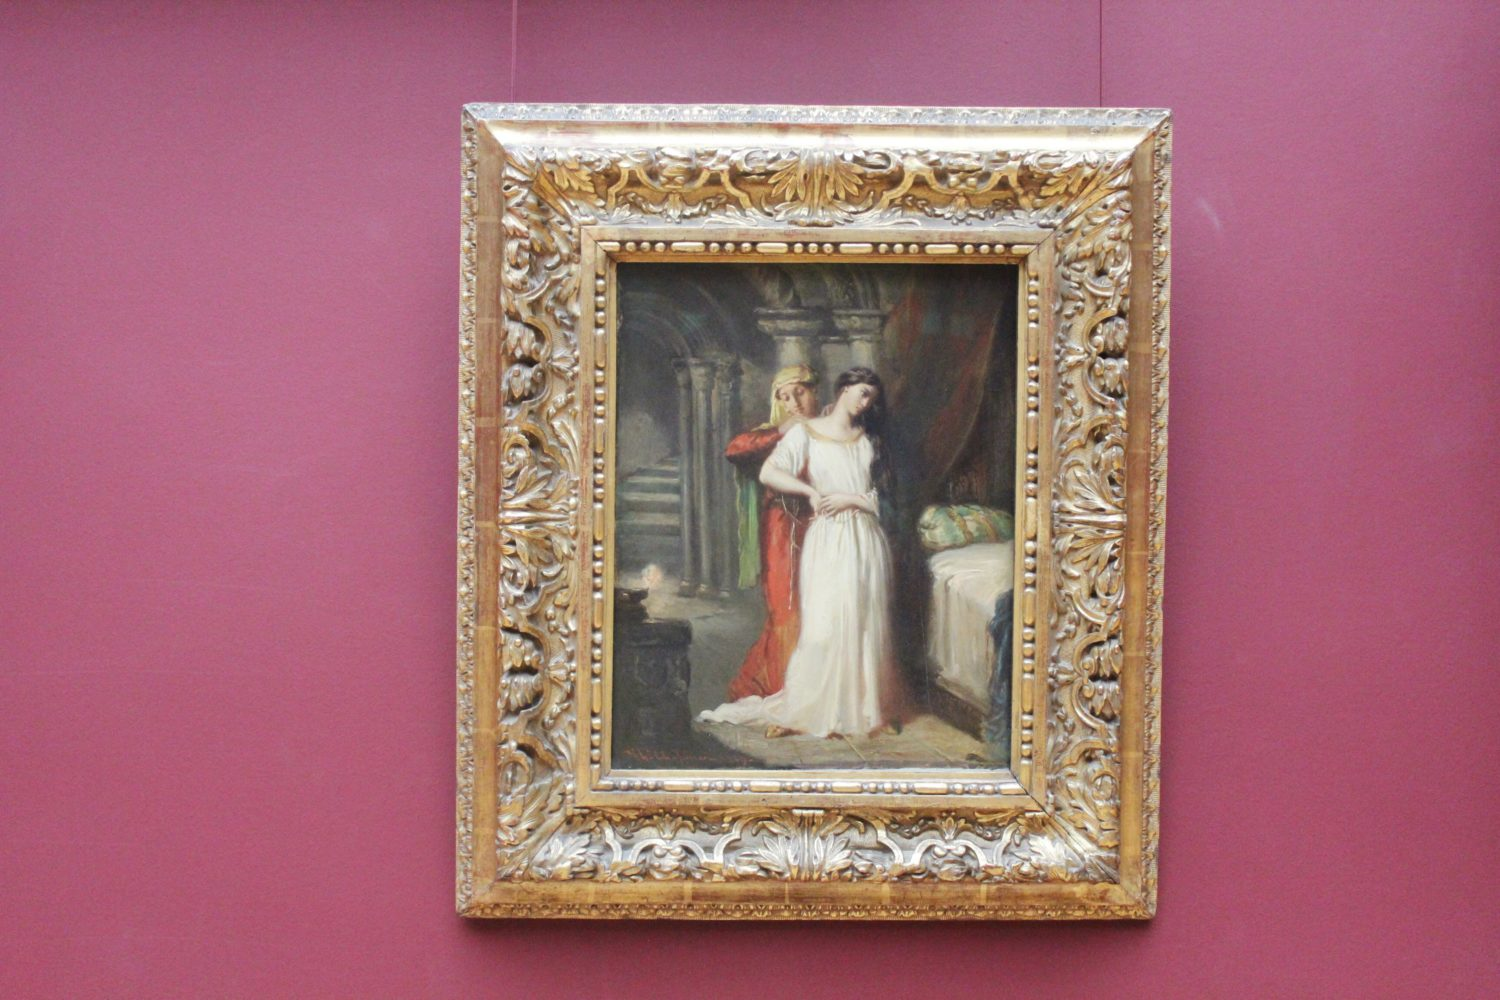 Famous paintings at The Louvre